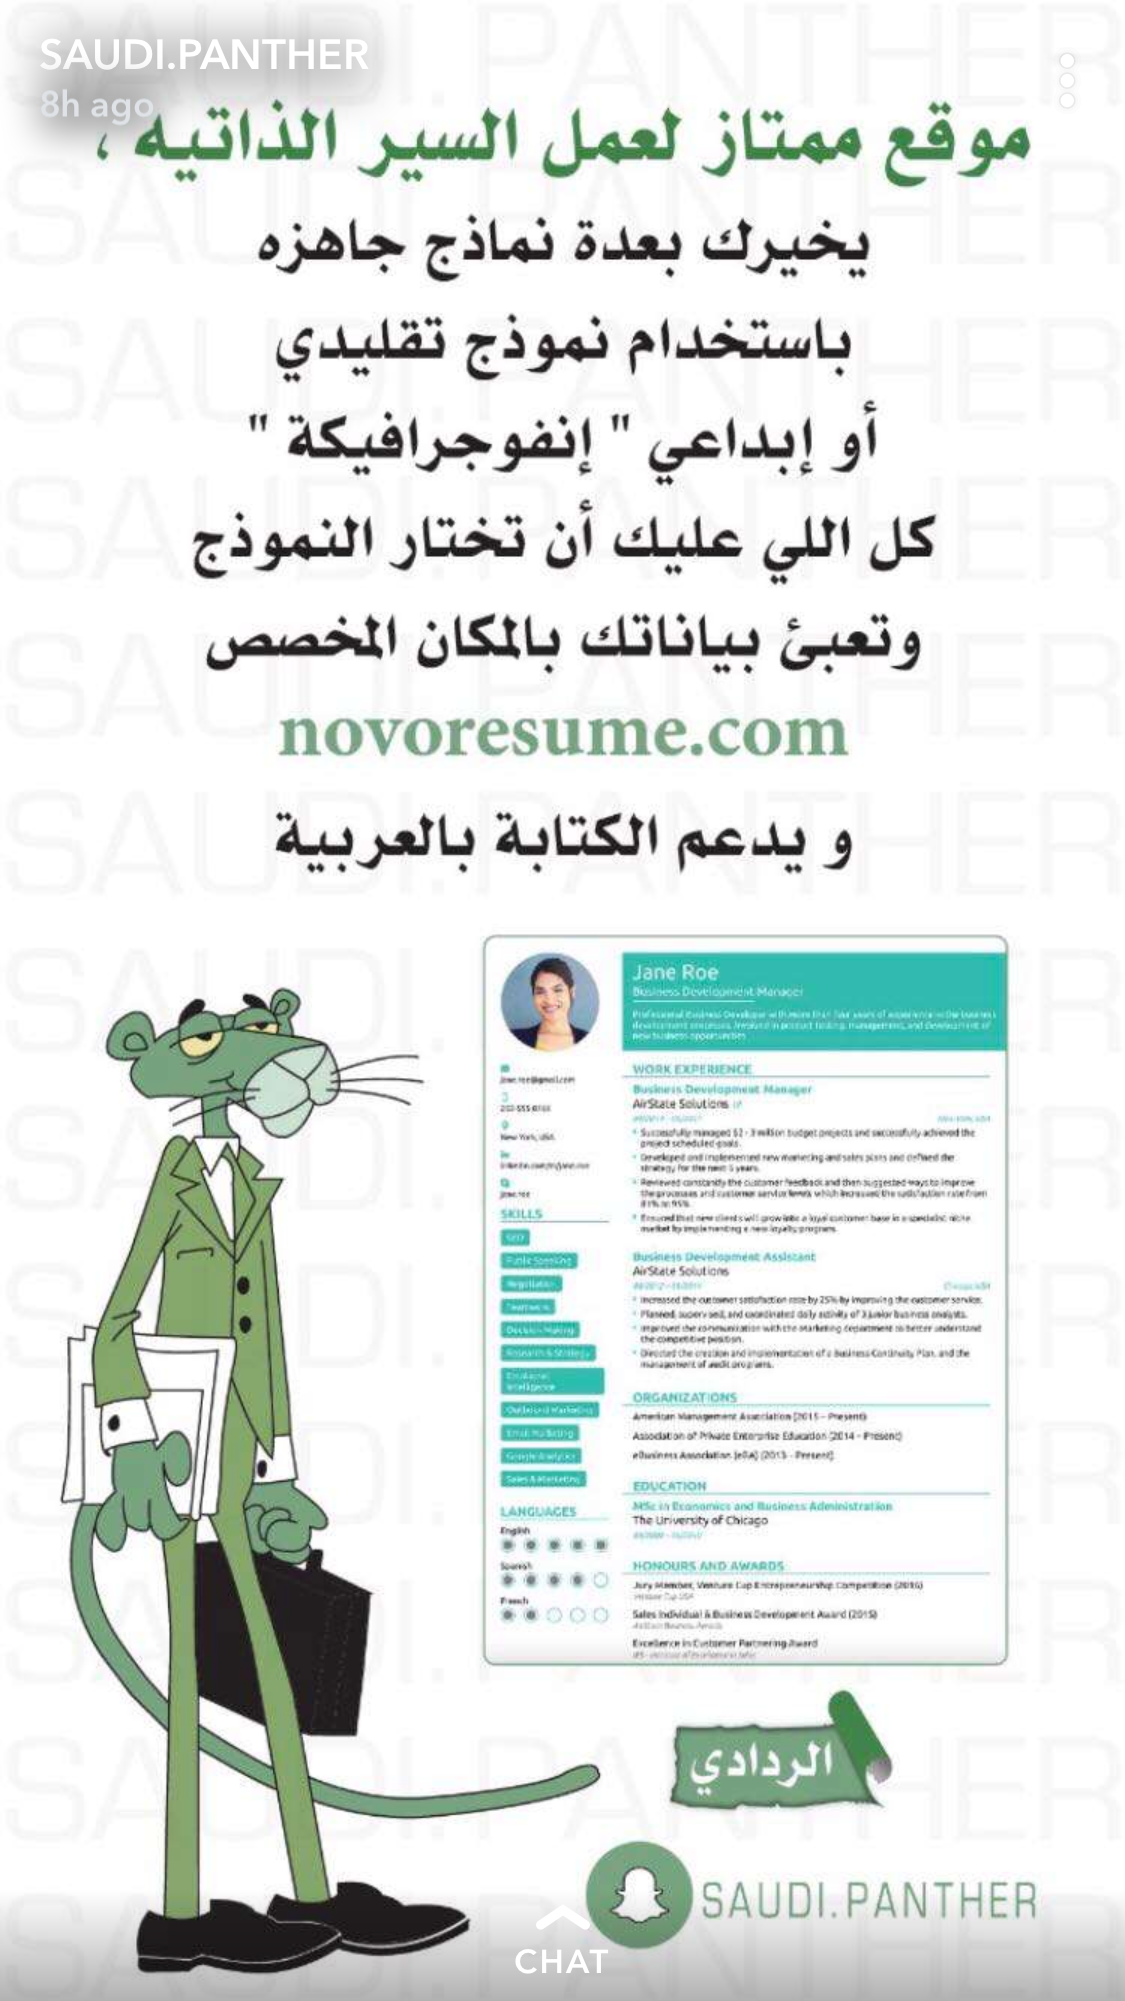 Pin by Mona on Saudi.Panther in 2020 Programming apps